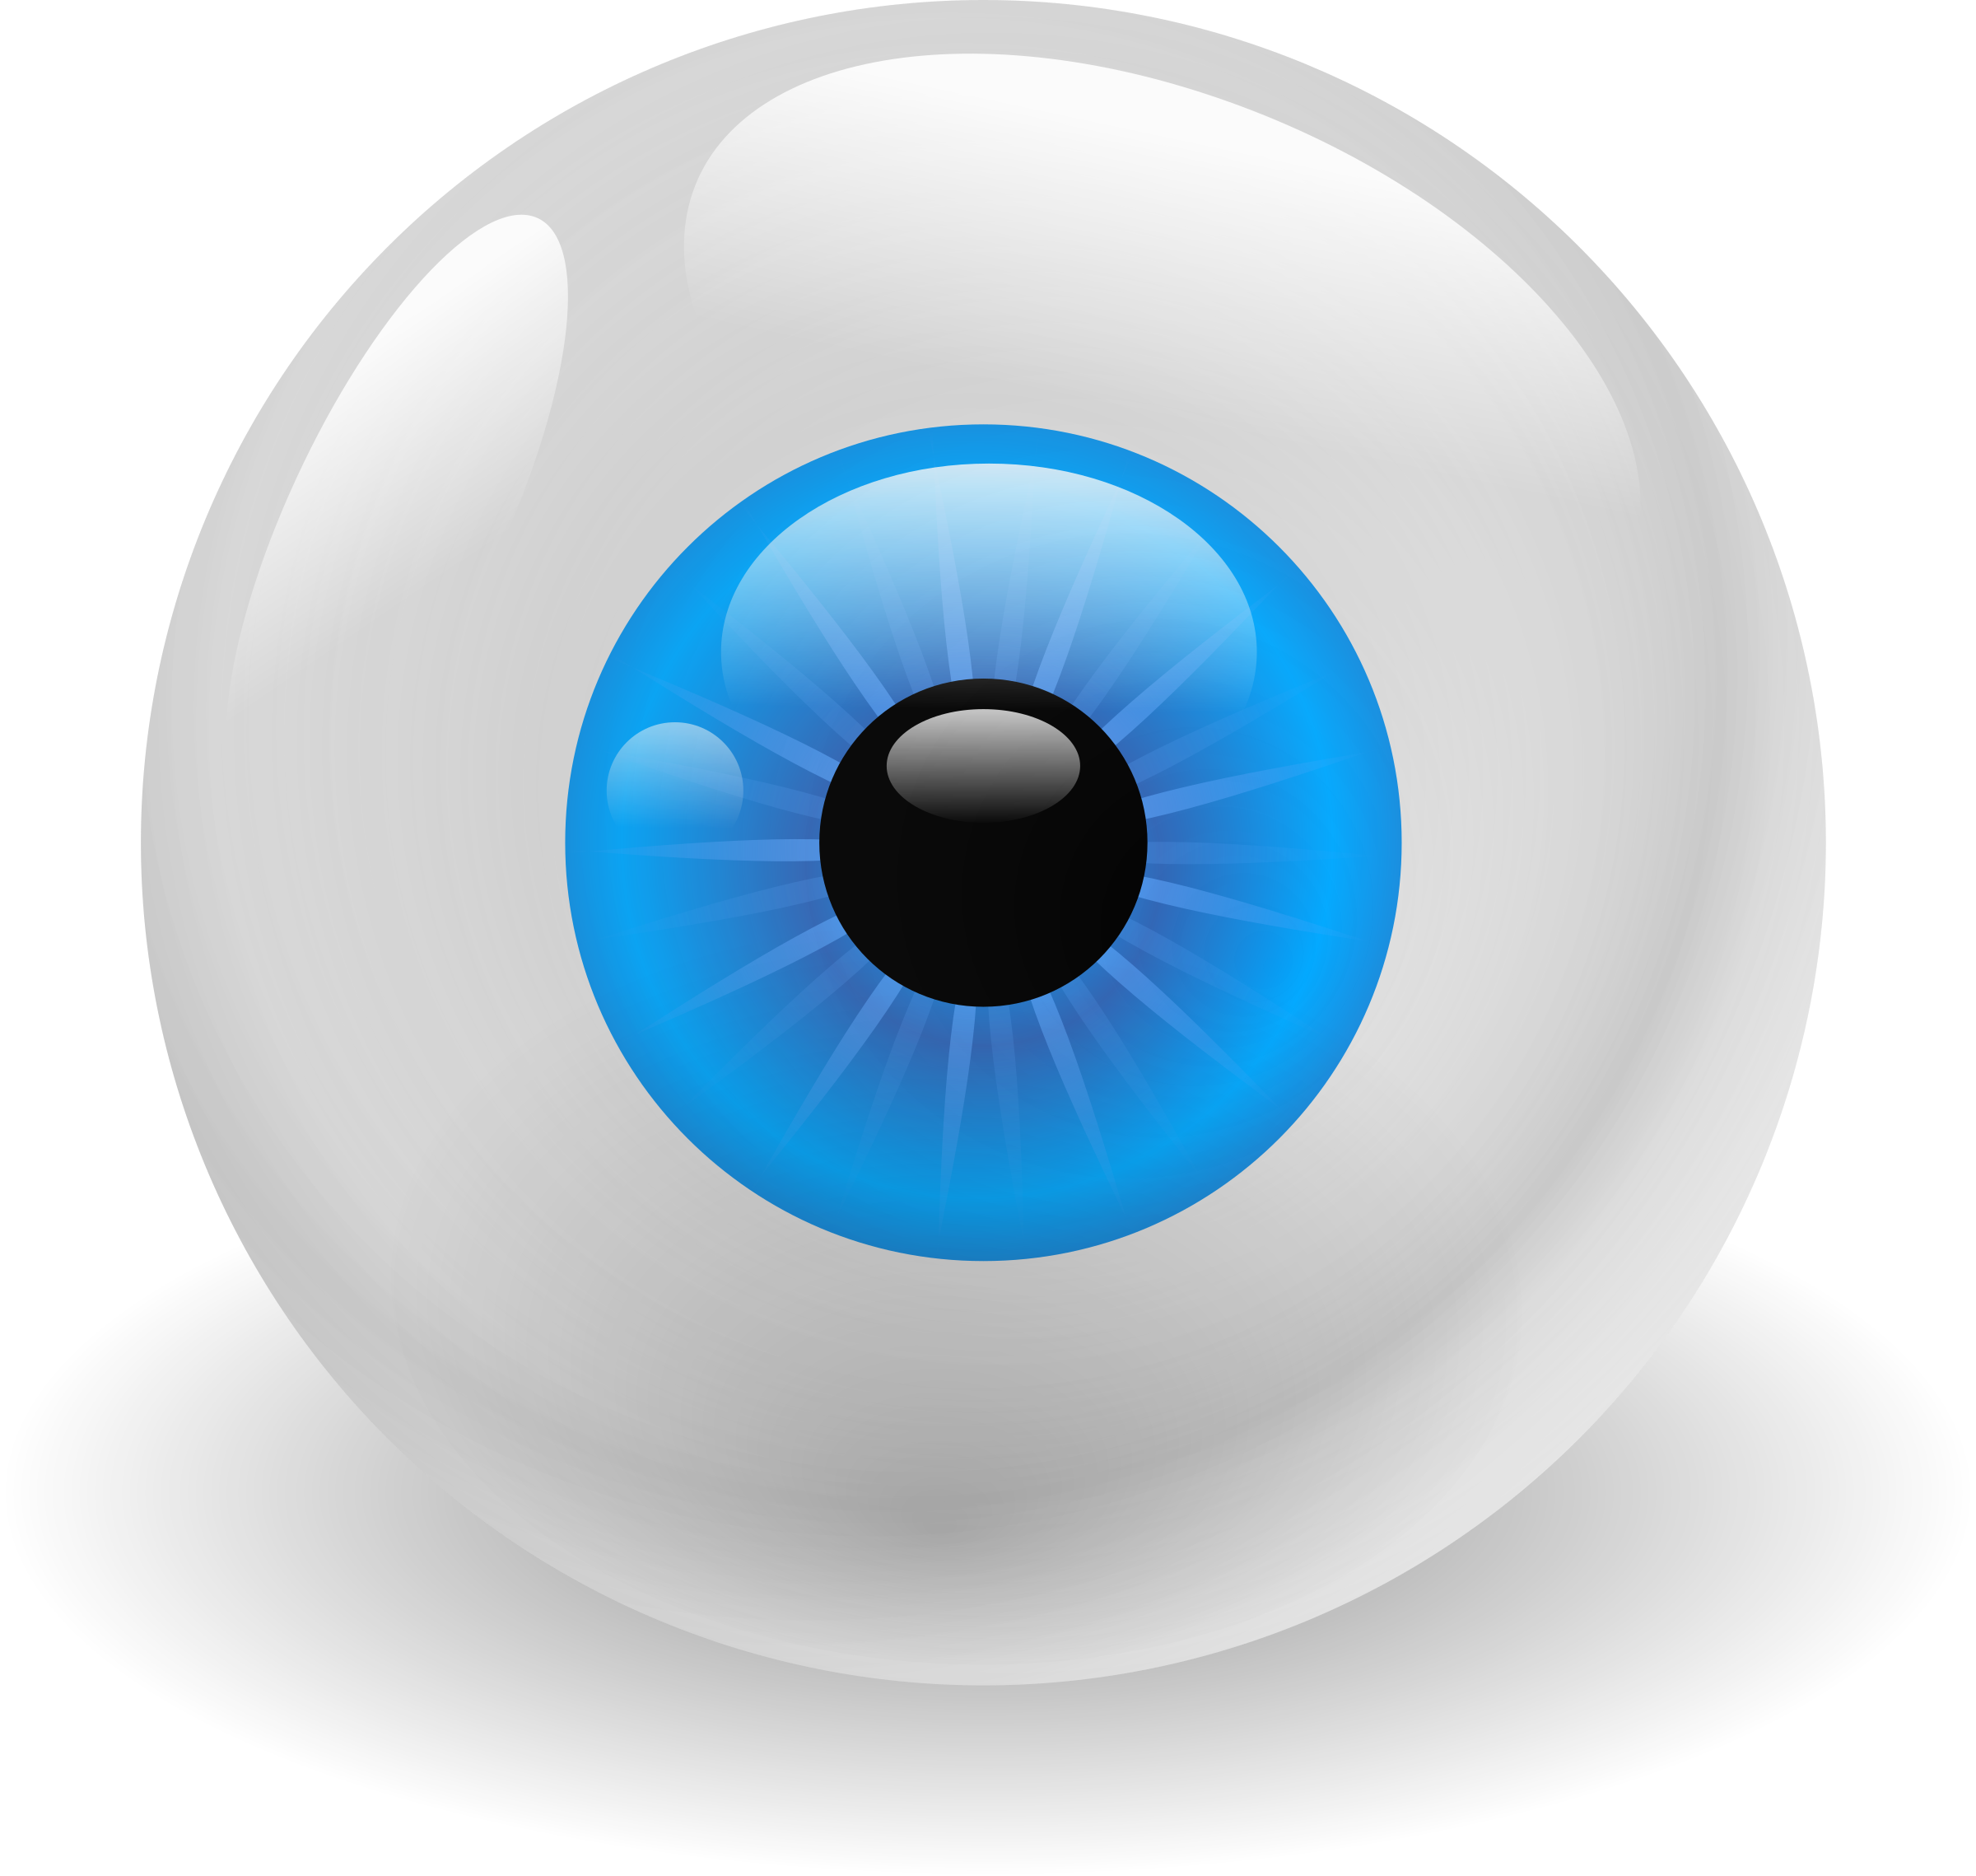 Horror vector eyeball. Eyes png images free